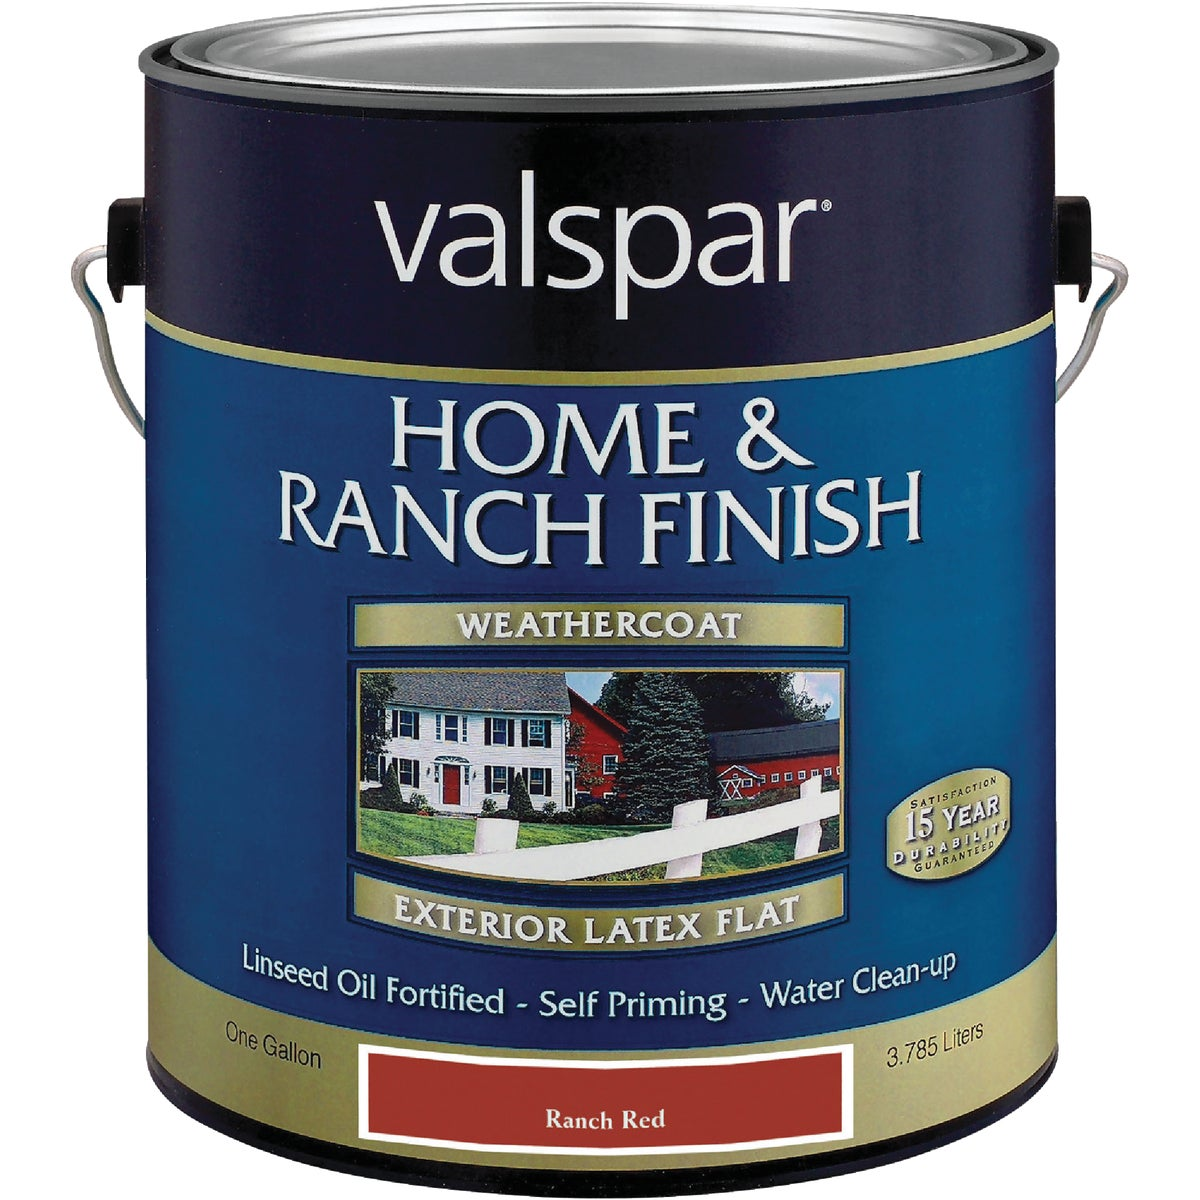 LTX FLAT RED BARN PAINT - 018.5221-10.007 by Valspar Corp